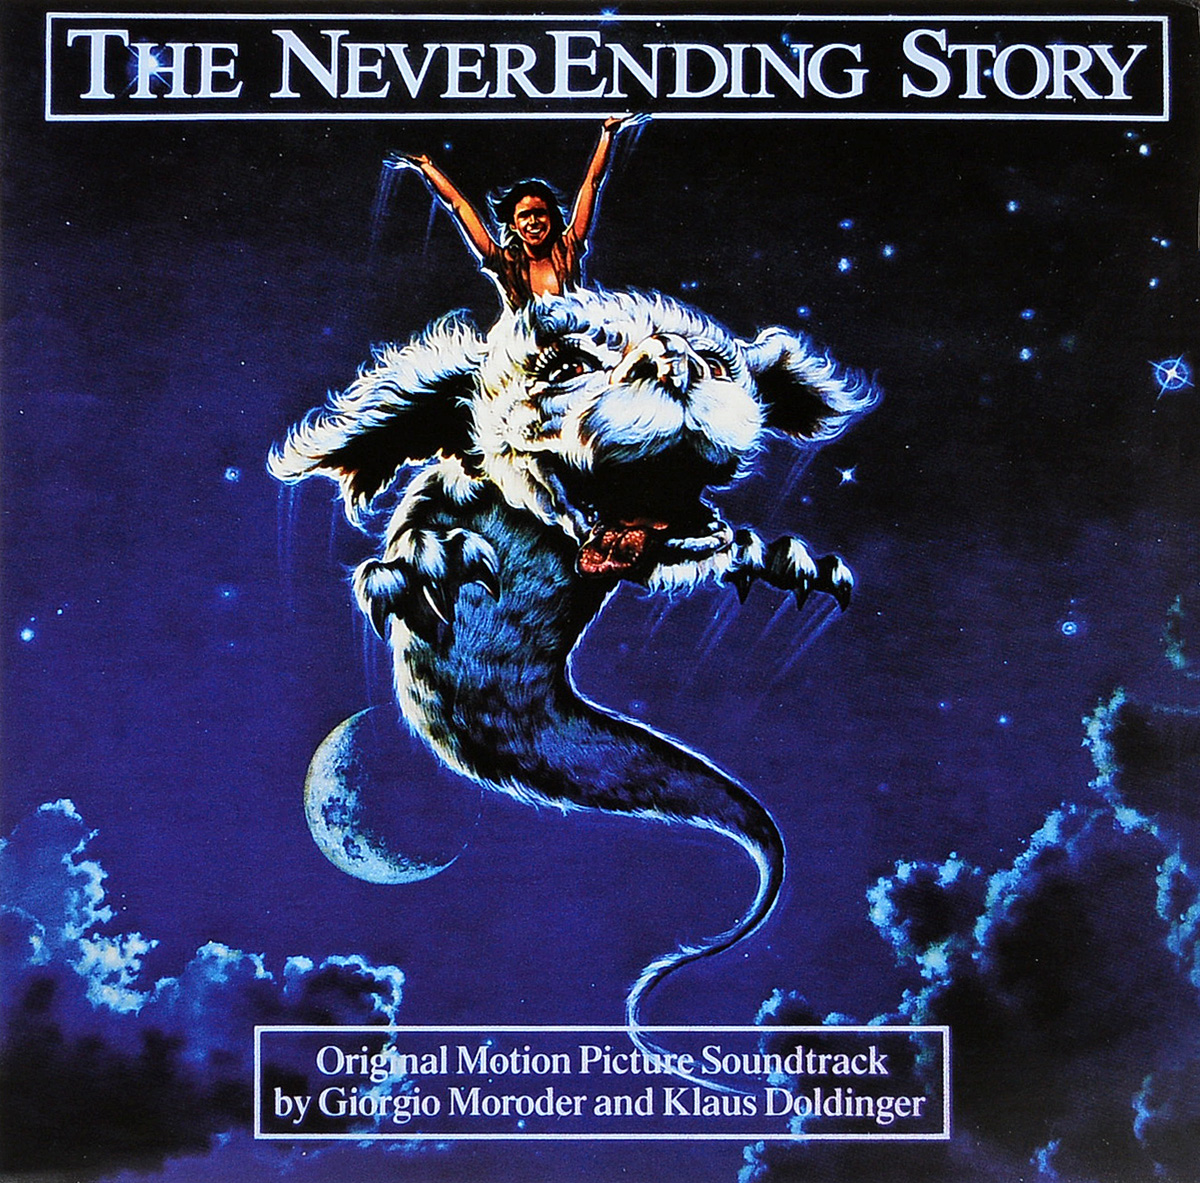 лучшая цена Джорджио Мородер,Клаус Долдинджер Giorgio Moroder, Klaus Doldinger. The Neverending Story OST: Expanded Collector's Edition (CD)